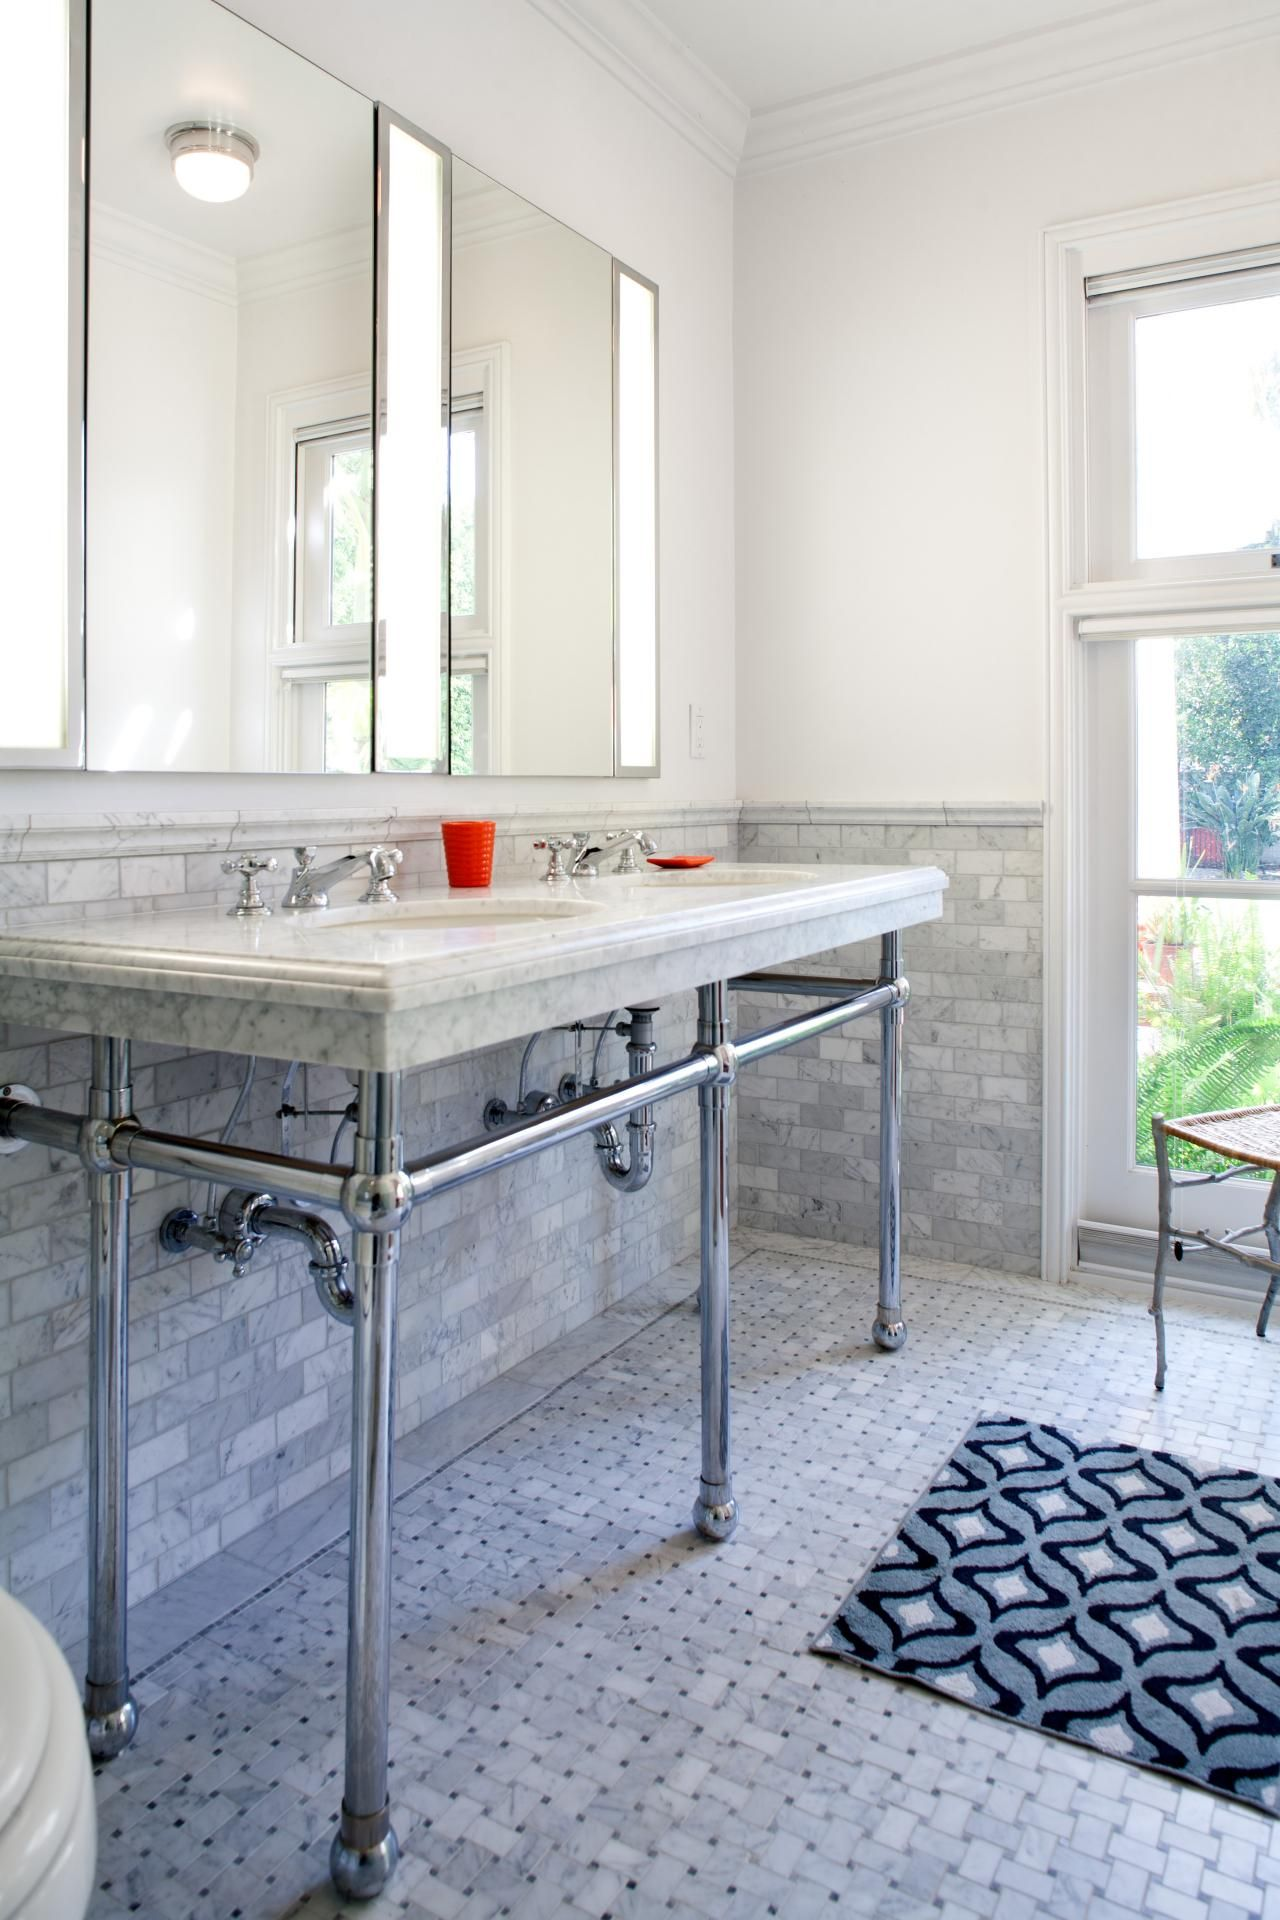 A 10 Year Remodel With Lofty Goal Bathrooms Pinterest Medicine